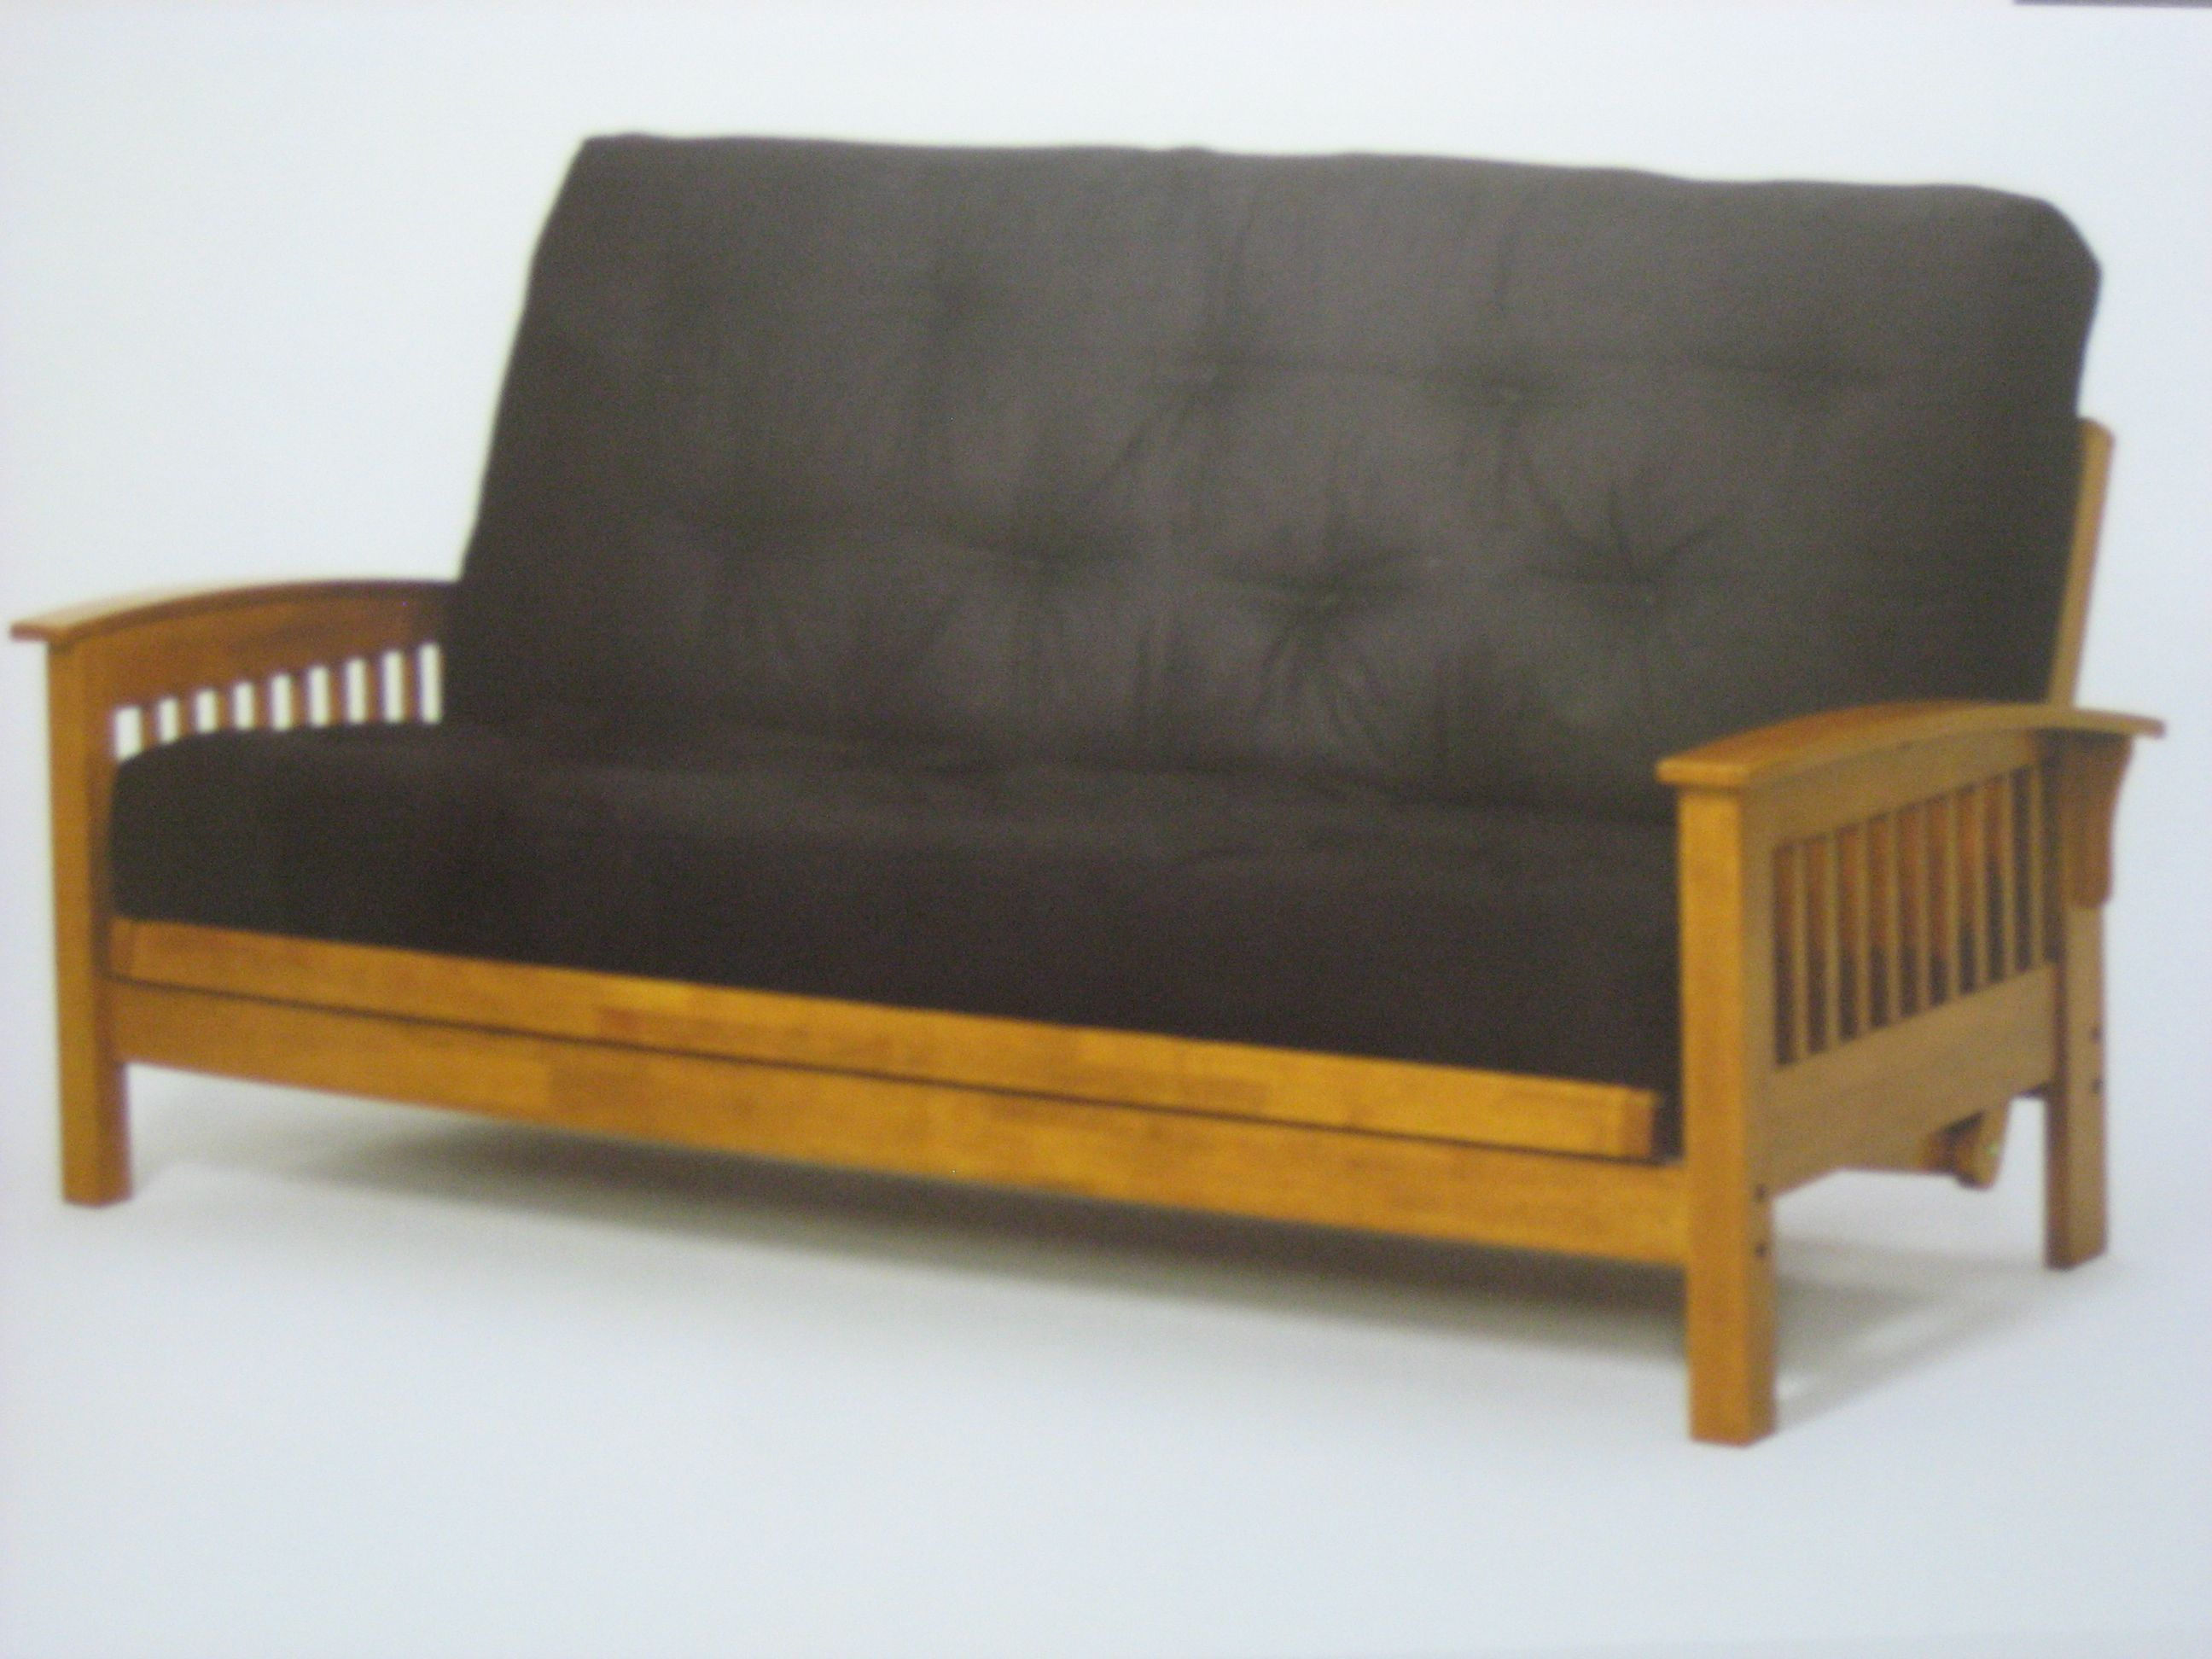 Wood Frame Futon With Mattress Examining A Number Of The Best Bed Evaluations From Experts On Market Is An Eye Ope